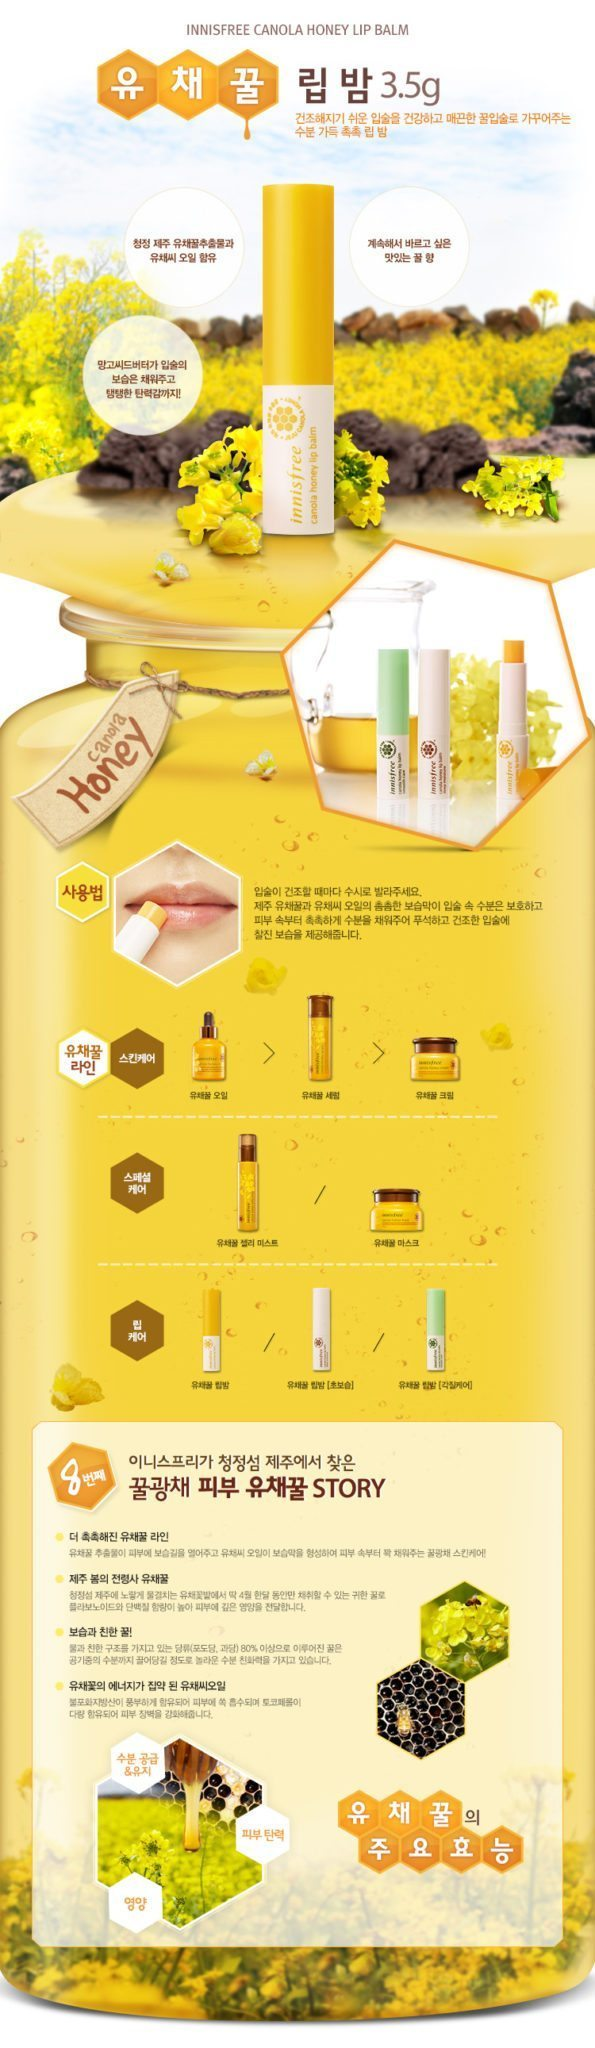 Innisfree Canola Honey Lip Balm Stick 3.5g malaysia cleansing skincare beautycare cosmetic makeup online shop1